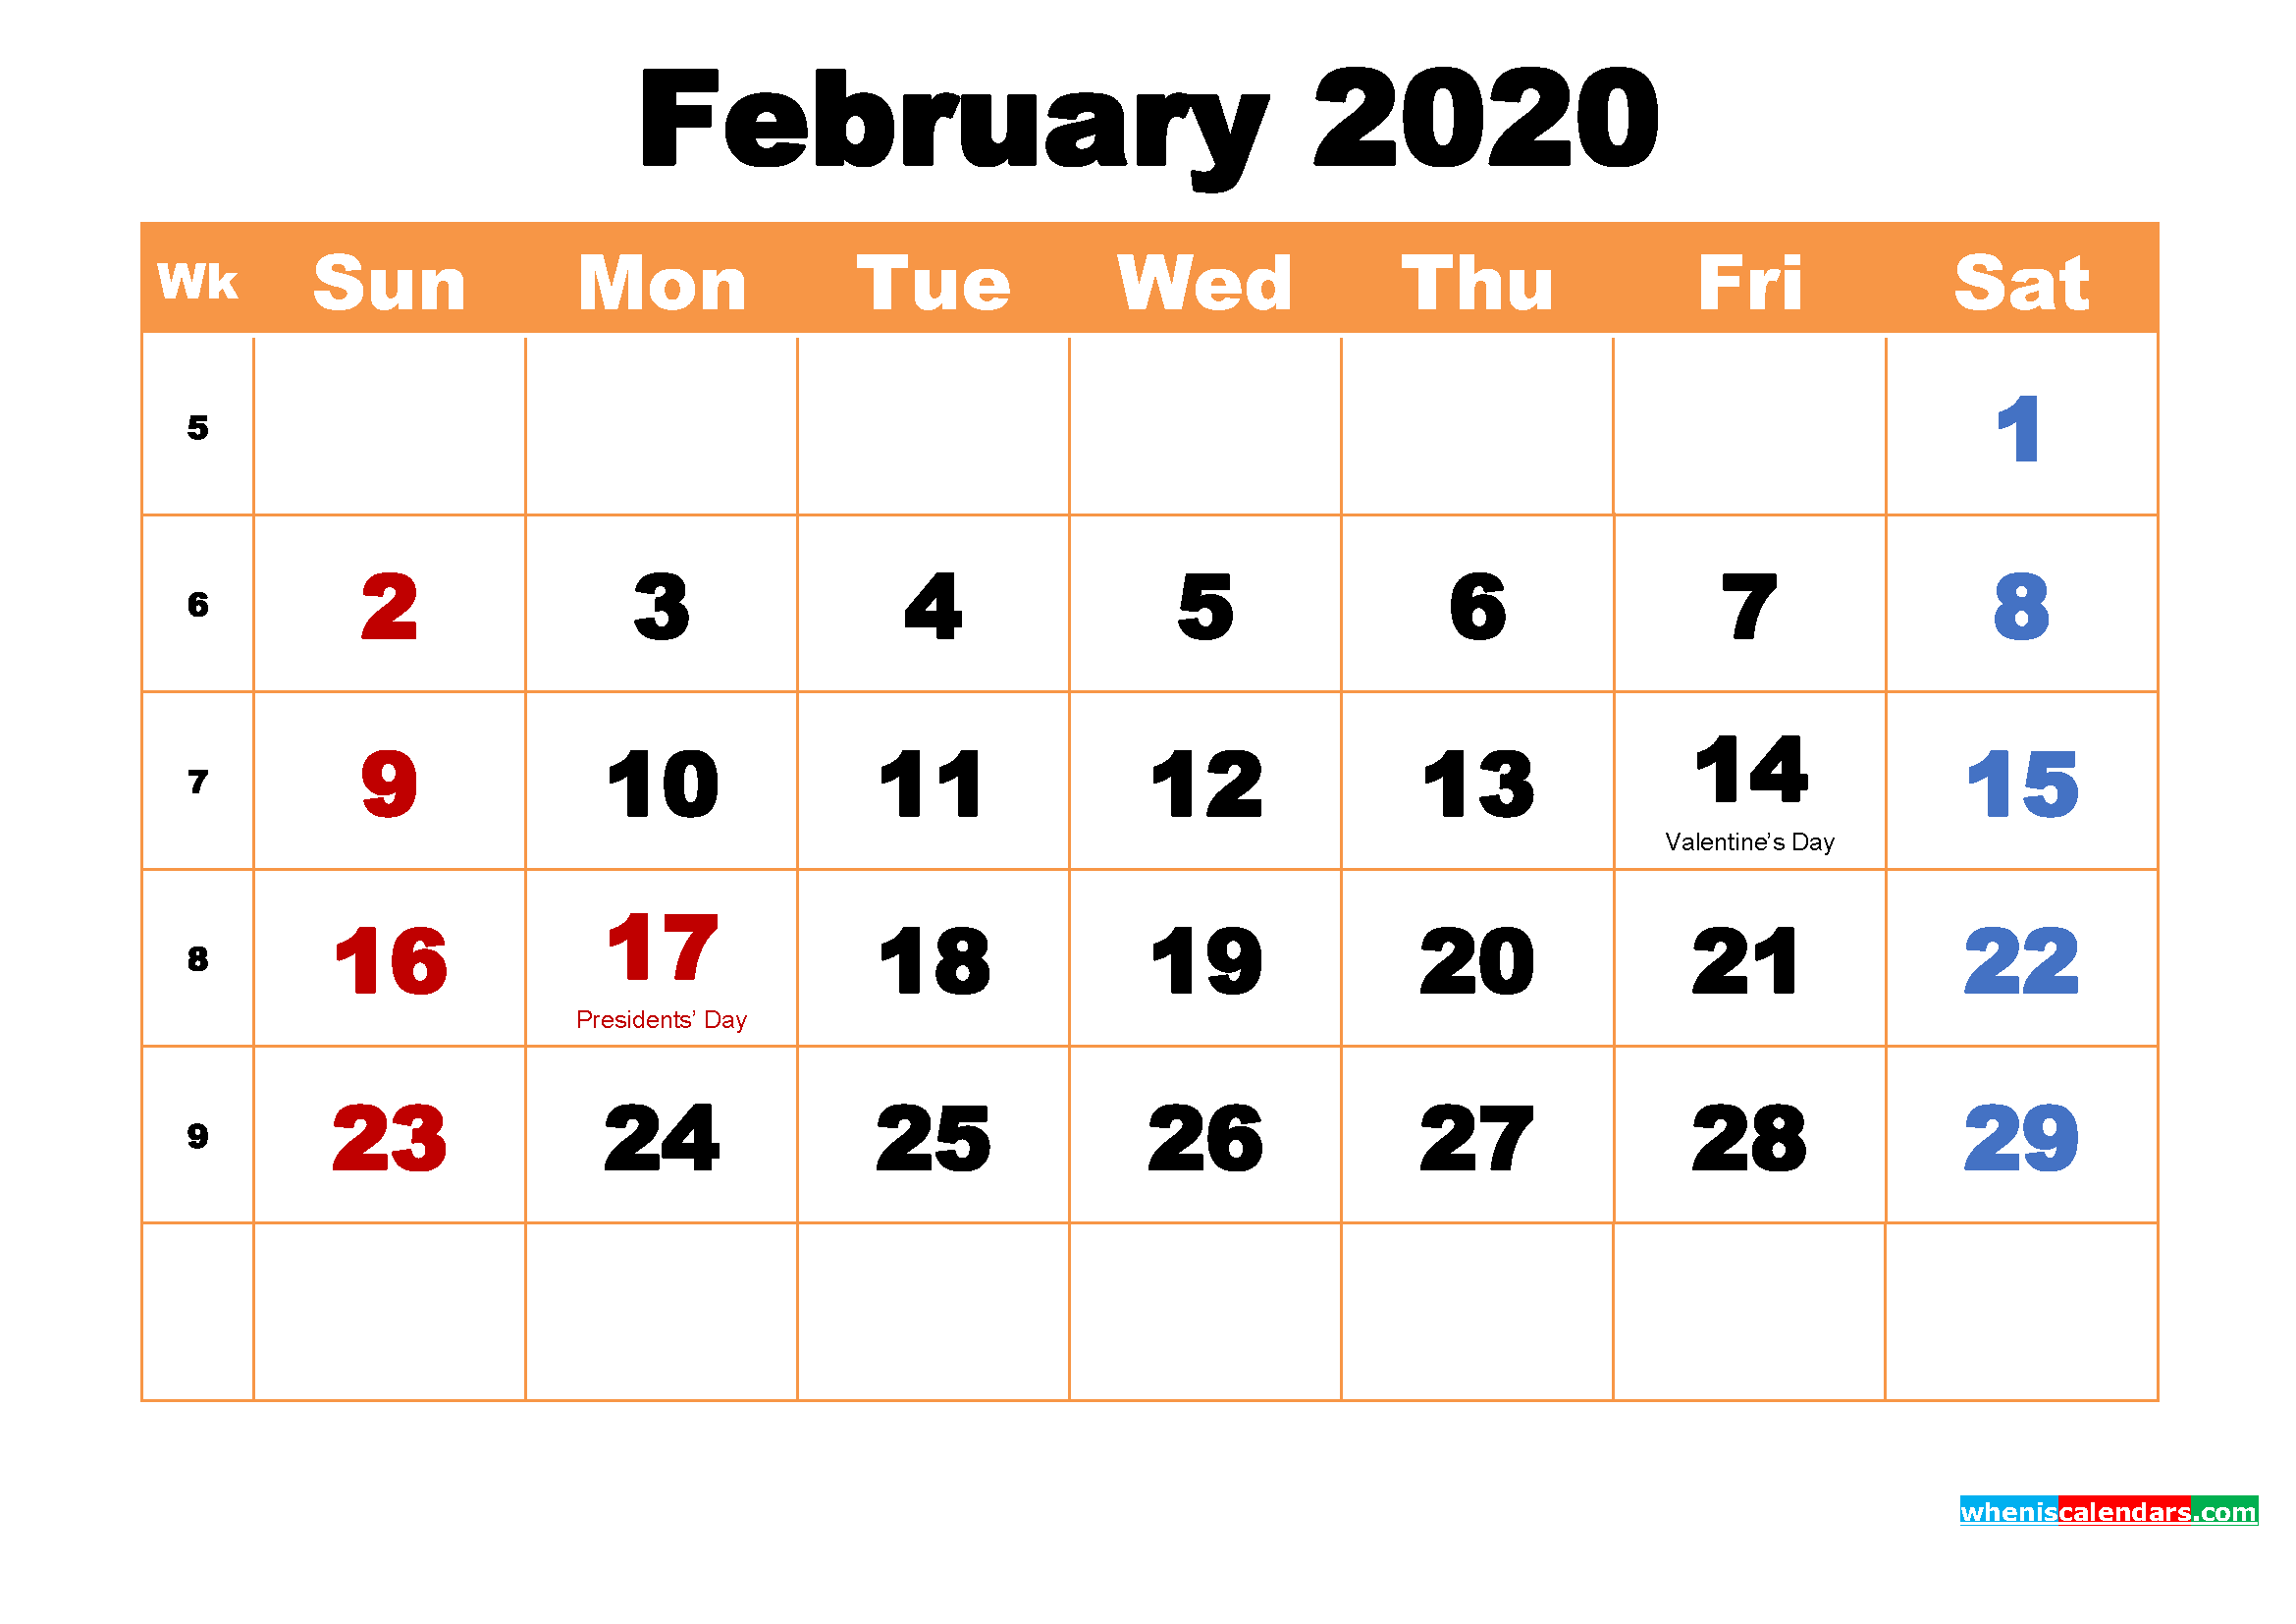 February 2020 Printable Monthly Calendar with Holidays